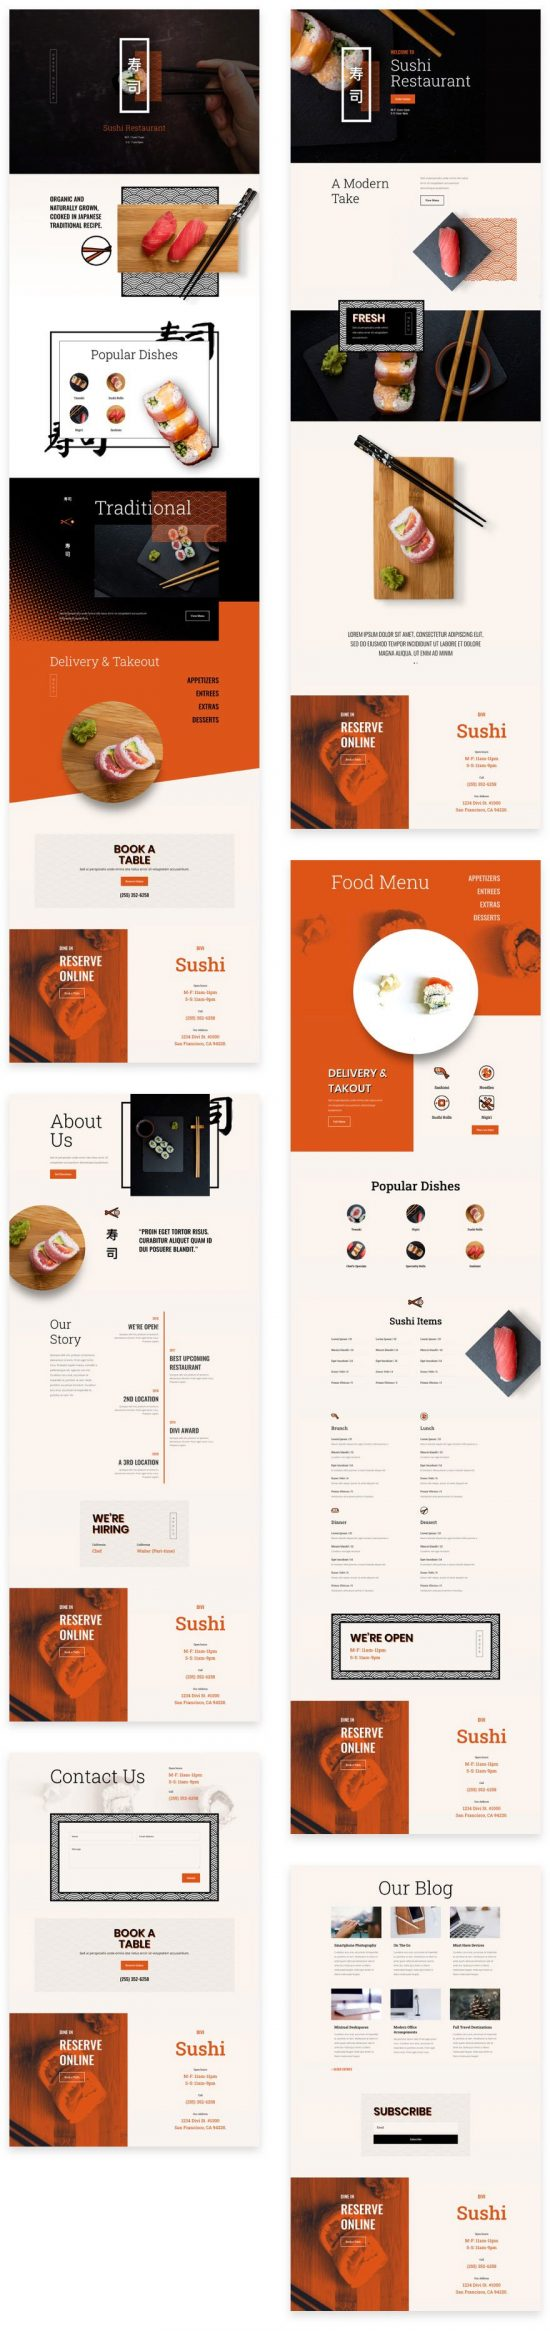 sushi restaurant divi layout by elegant themes 01 550x2331 - Sushi Restaurant Divi Layout By Elegant Themes